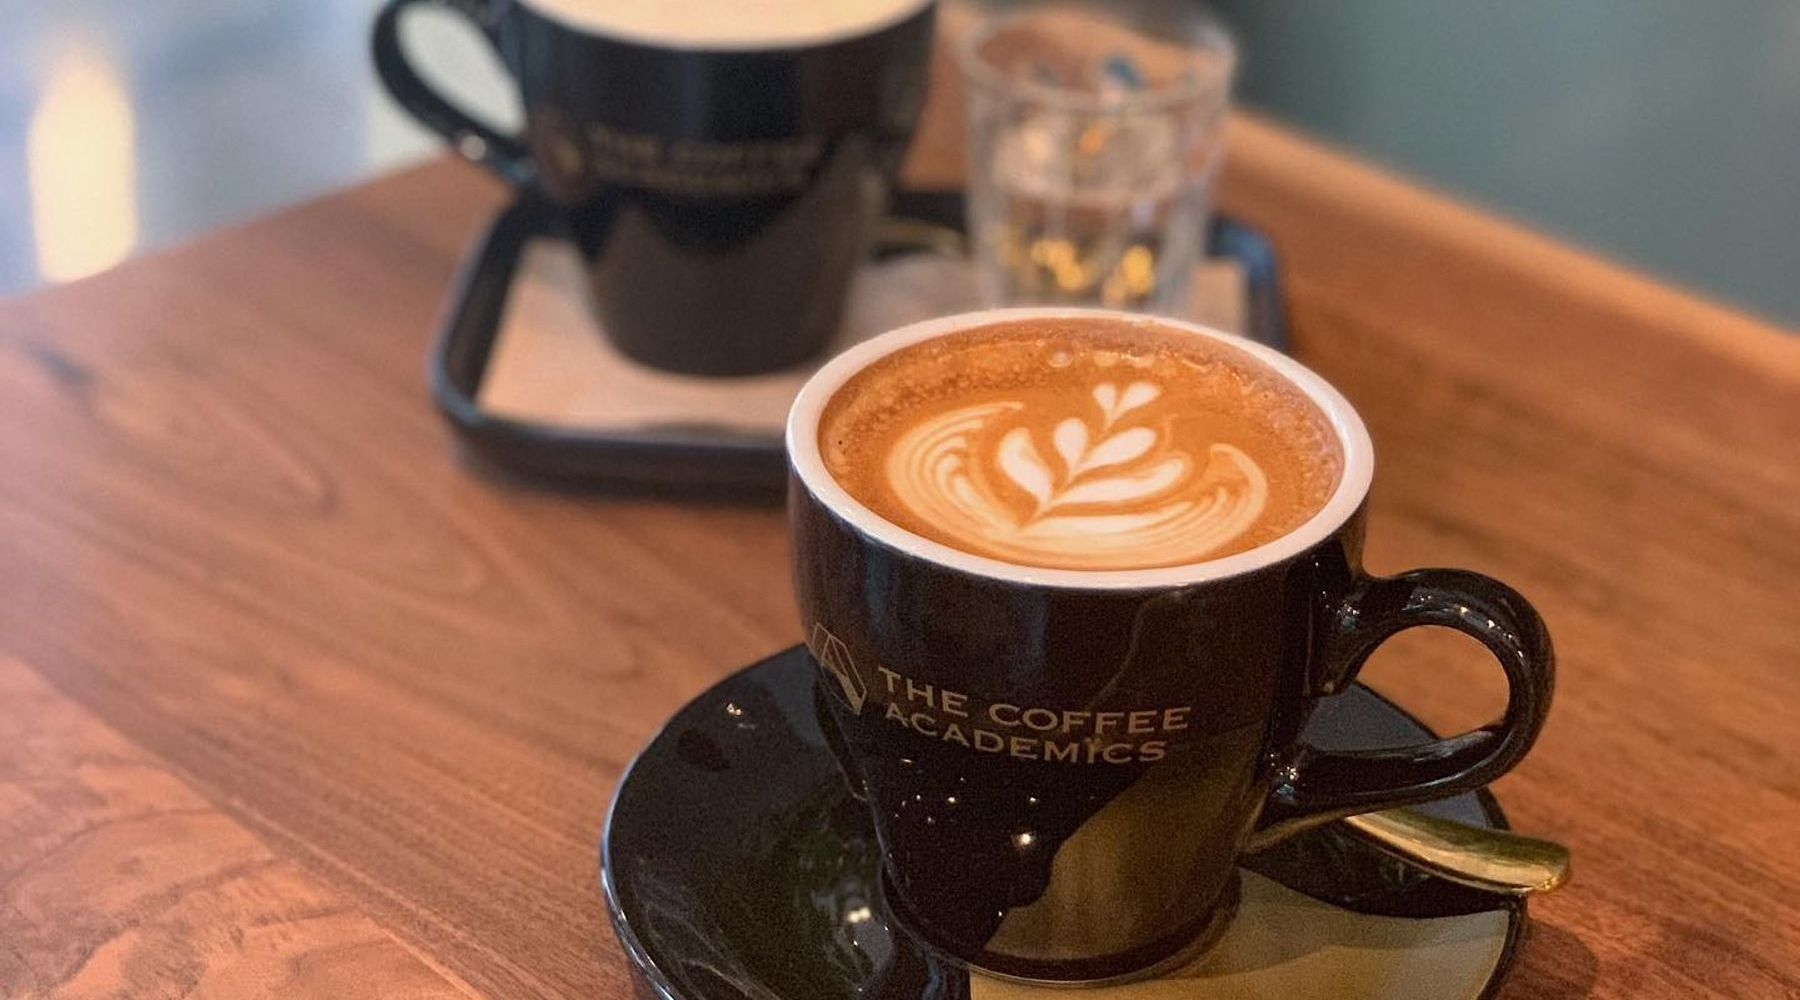 8 Best Cafes in Singapore to Grab Instagram-Worthy Latte Art